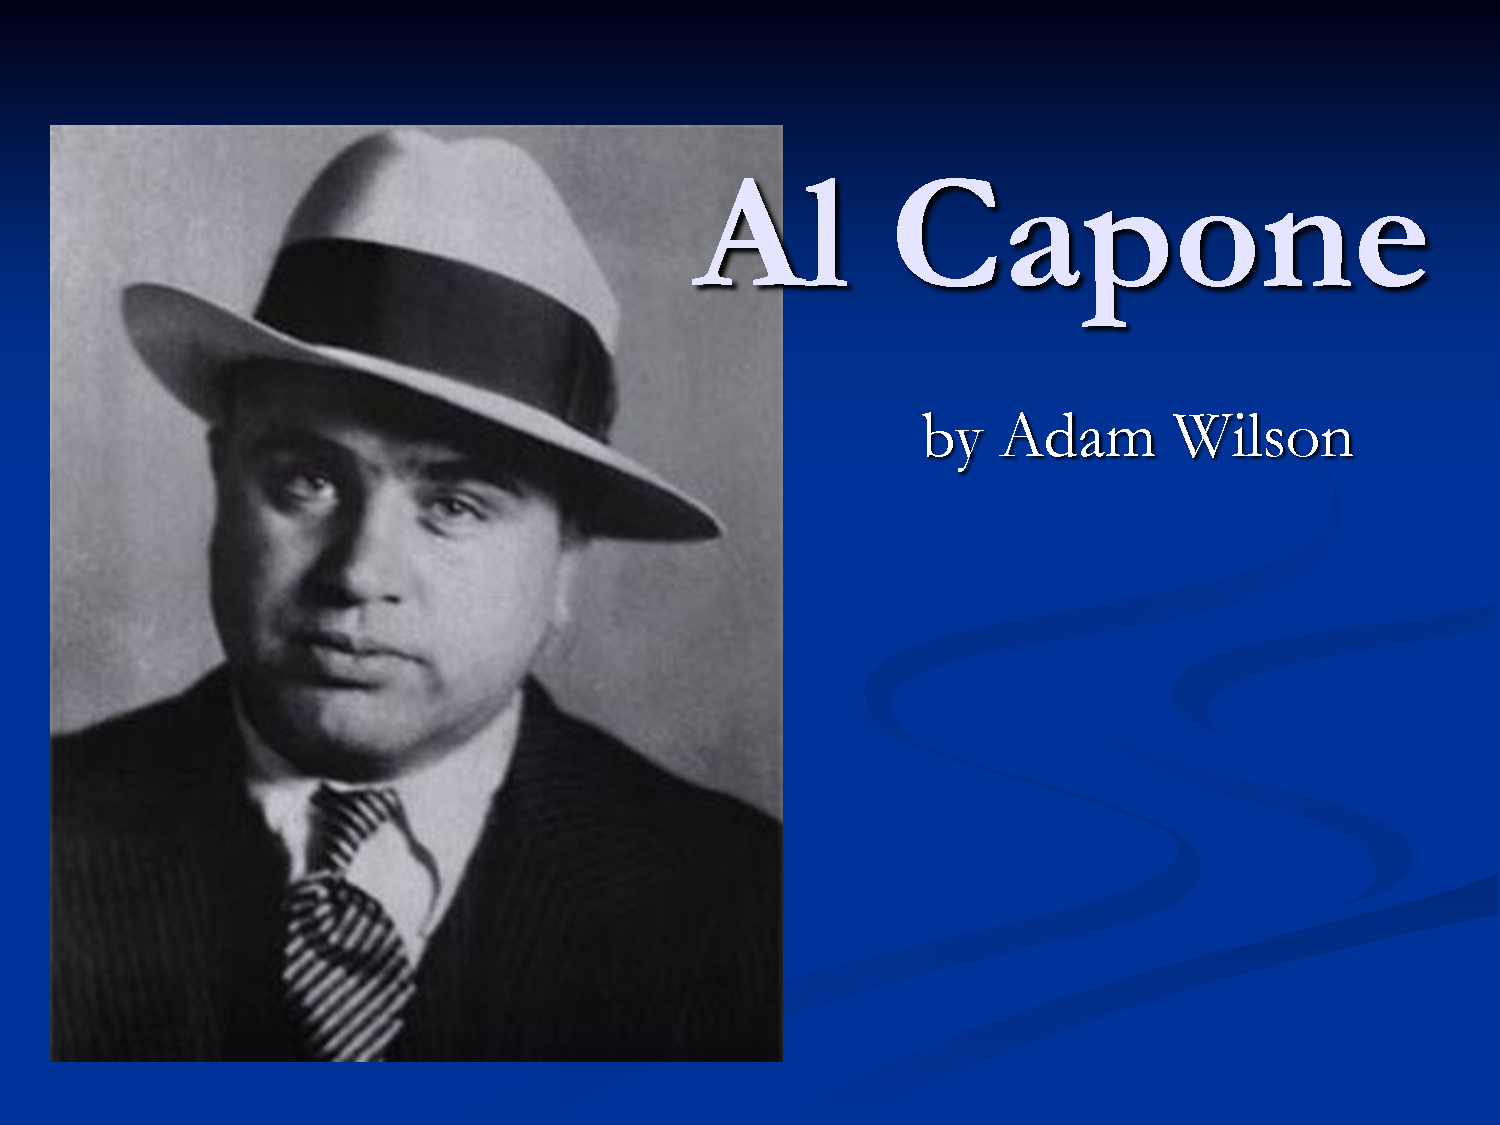 """the life and world of popular american gangster al capone 20+ best al capone quotes sayings: alphonse gabriel """"al"""" capone was an american gangster who attained fame during the prohibition erahis seven-year reign as crime boss ended when he was 33 years old."""